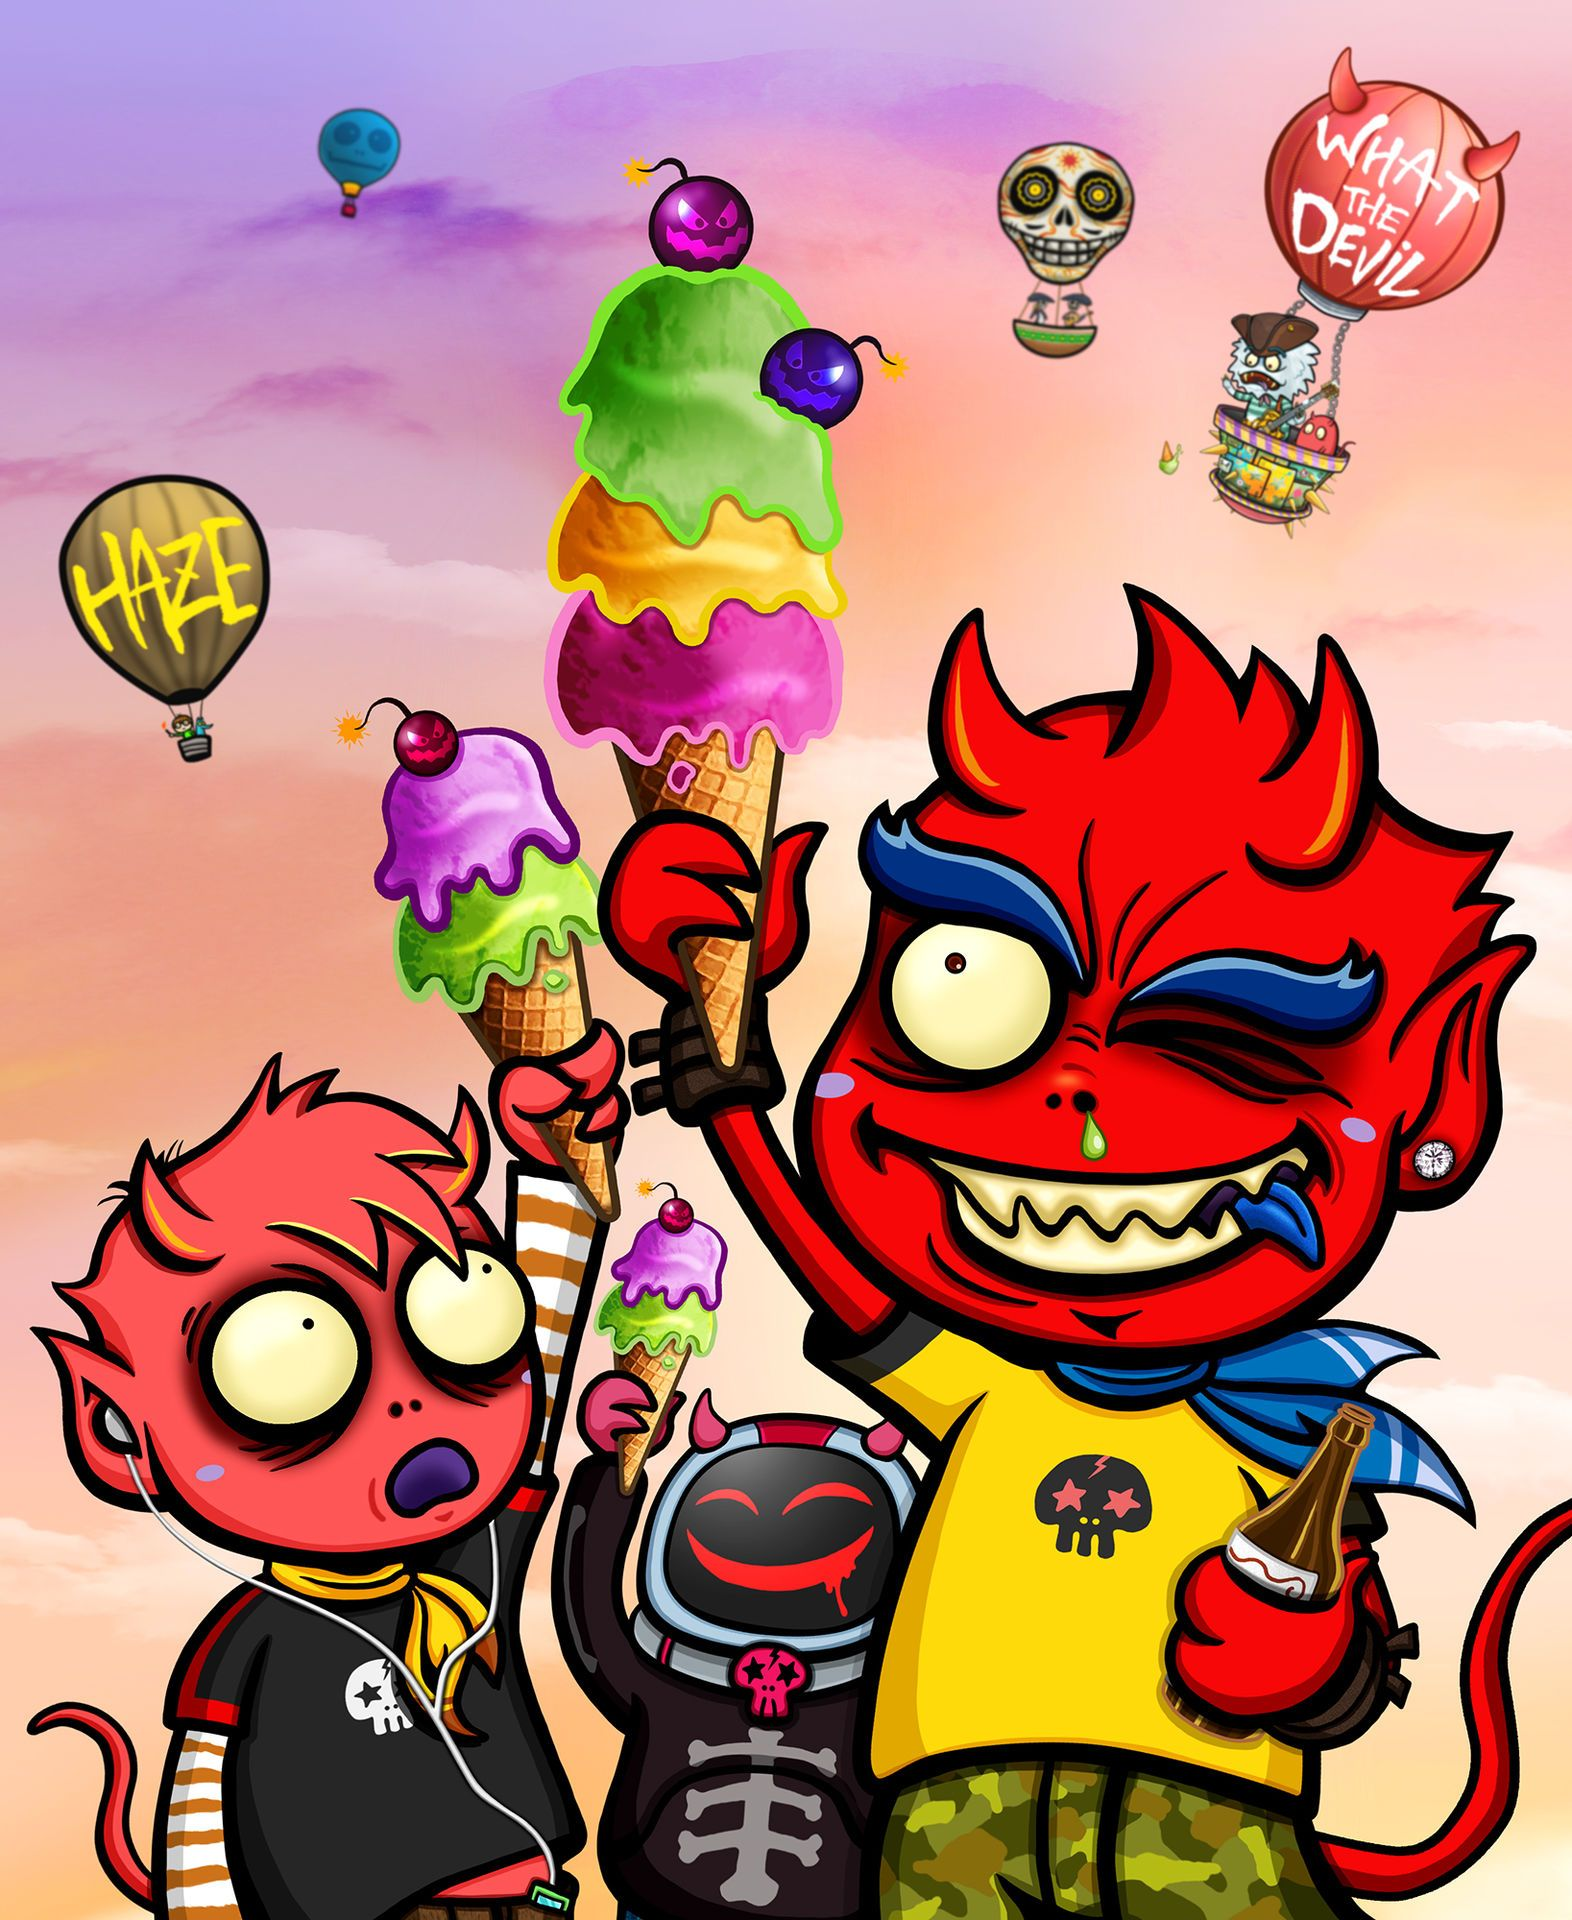 Urban Devil - Ice Cream Boom / Creator, Characters and Illustrations by PEPPERJERRY